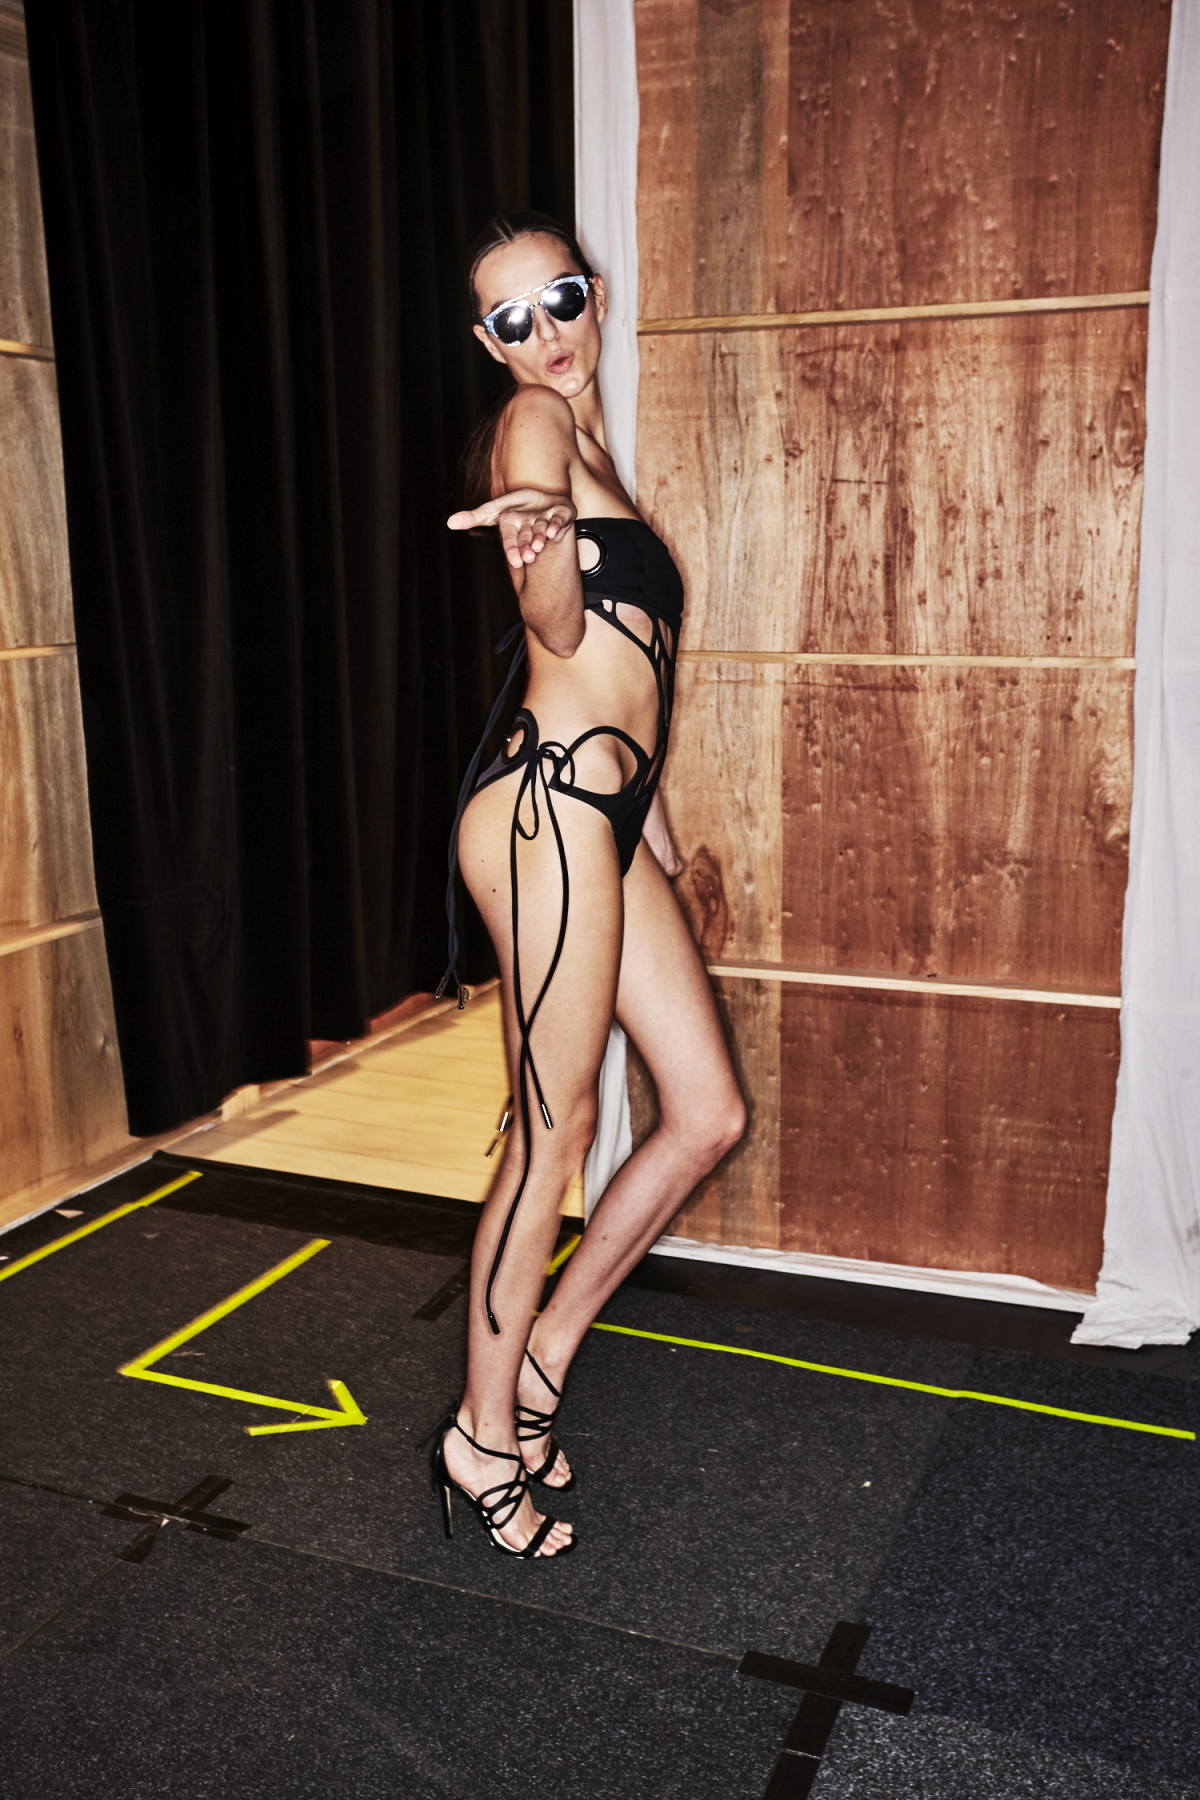 Handsy Swimwear by Emma Standen Resort 2018 Fashion Show Sydney Backstage